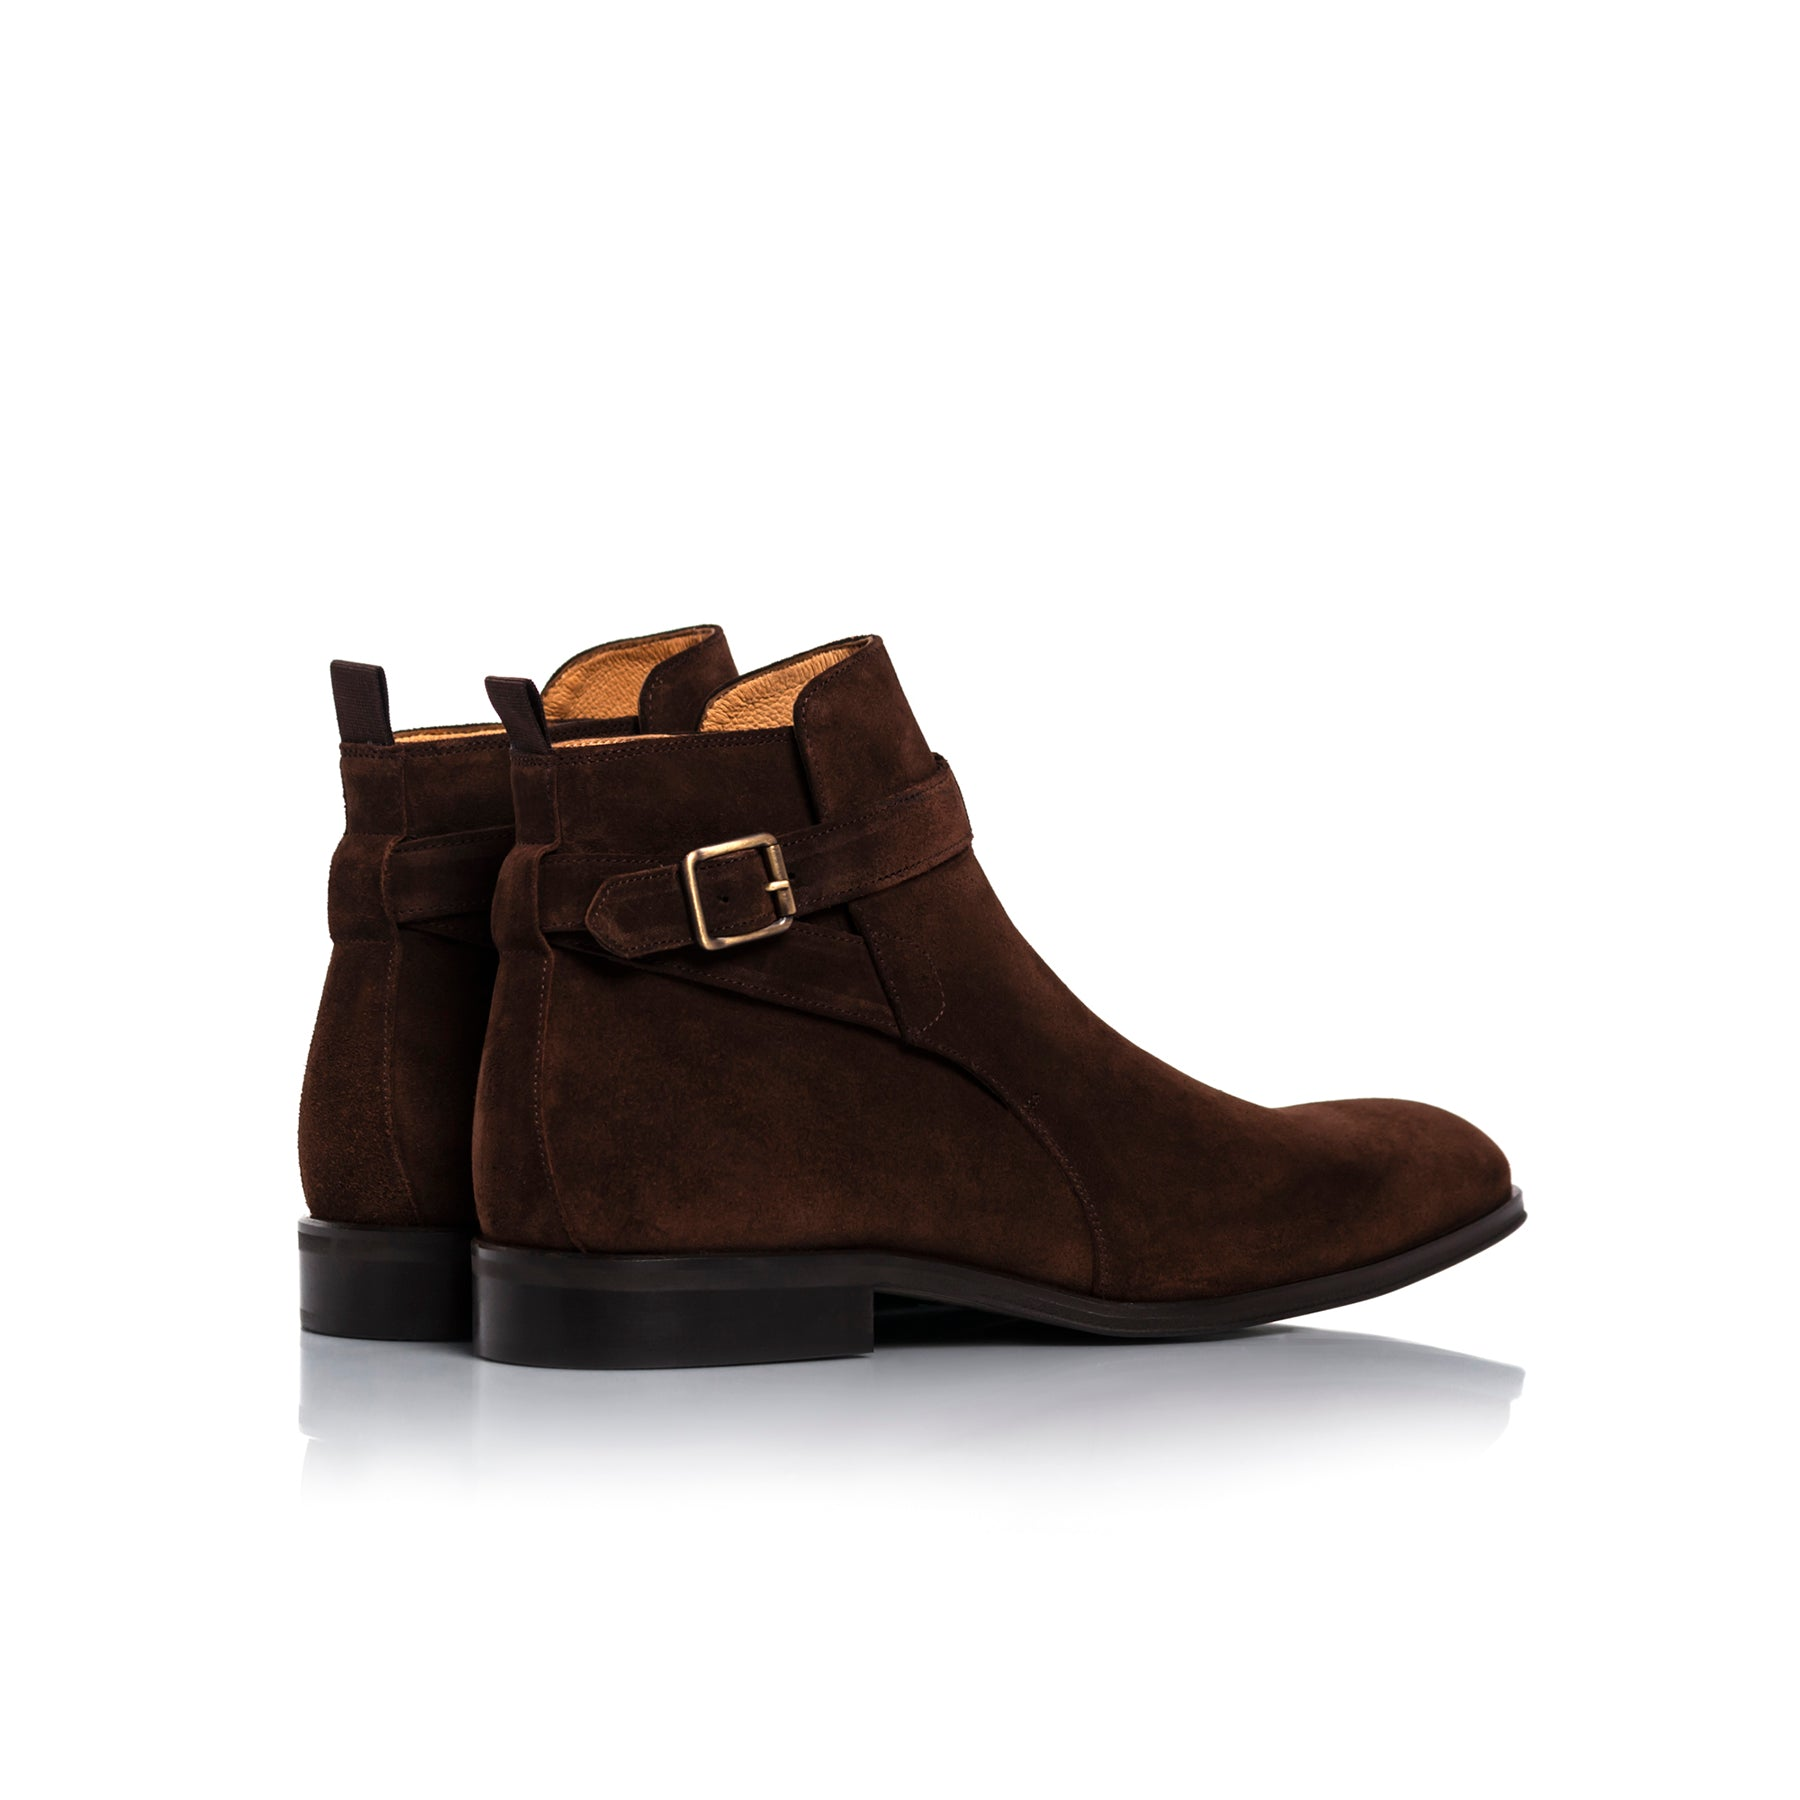 Jim Brown Suede Boots